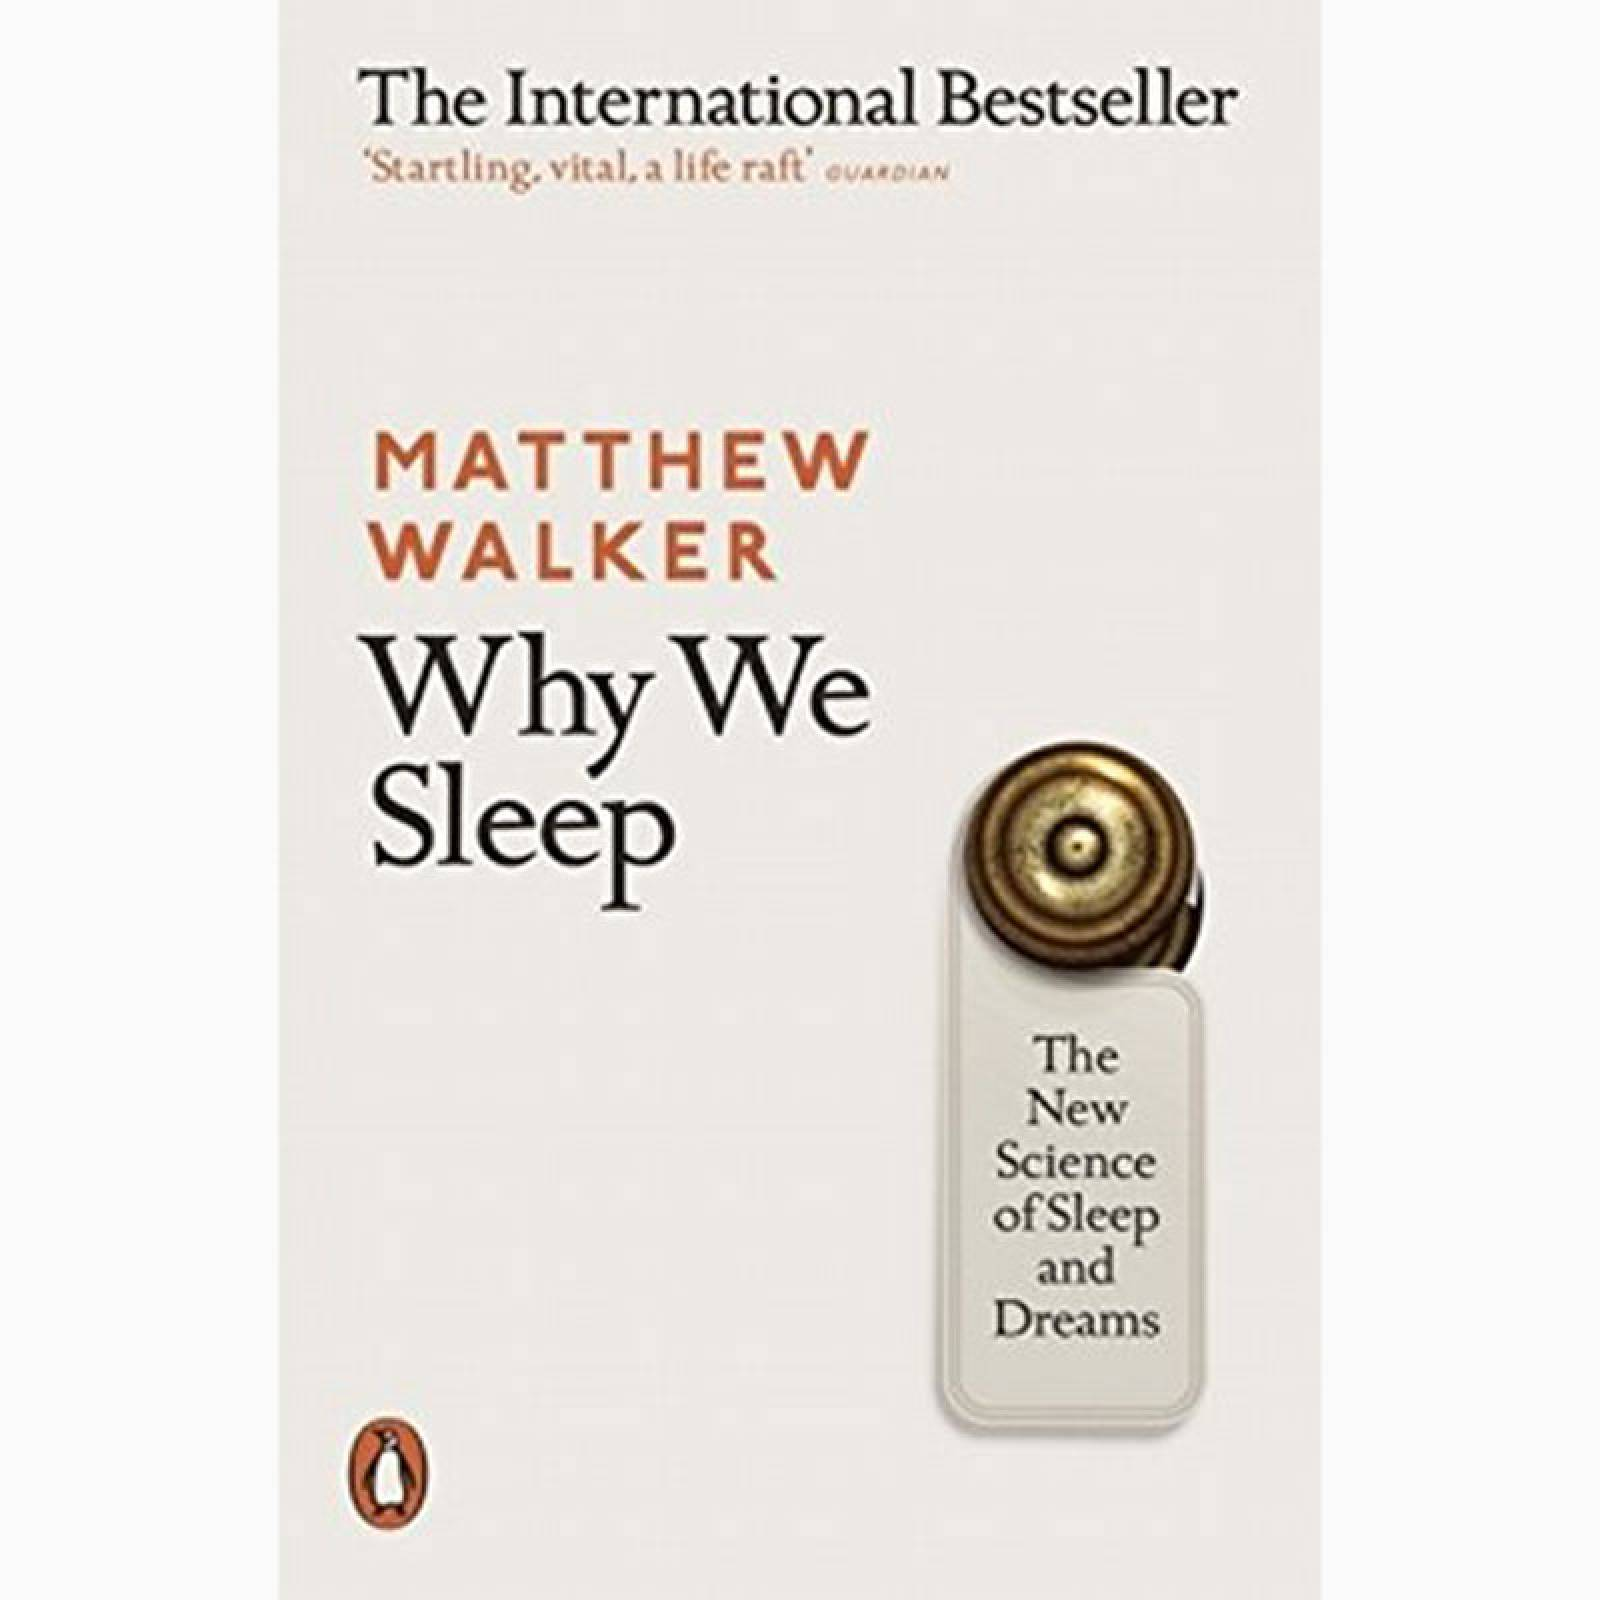 Why We Sleep By Matthew Walker - Paperback Book